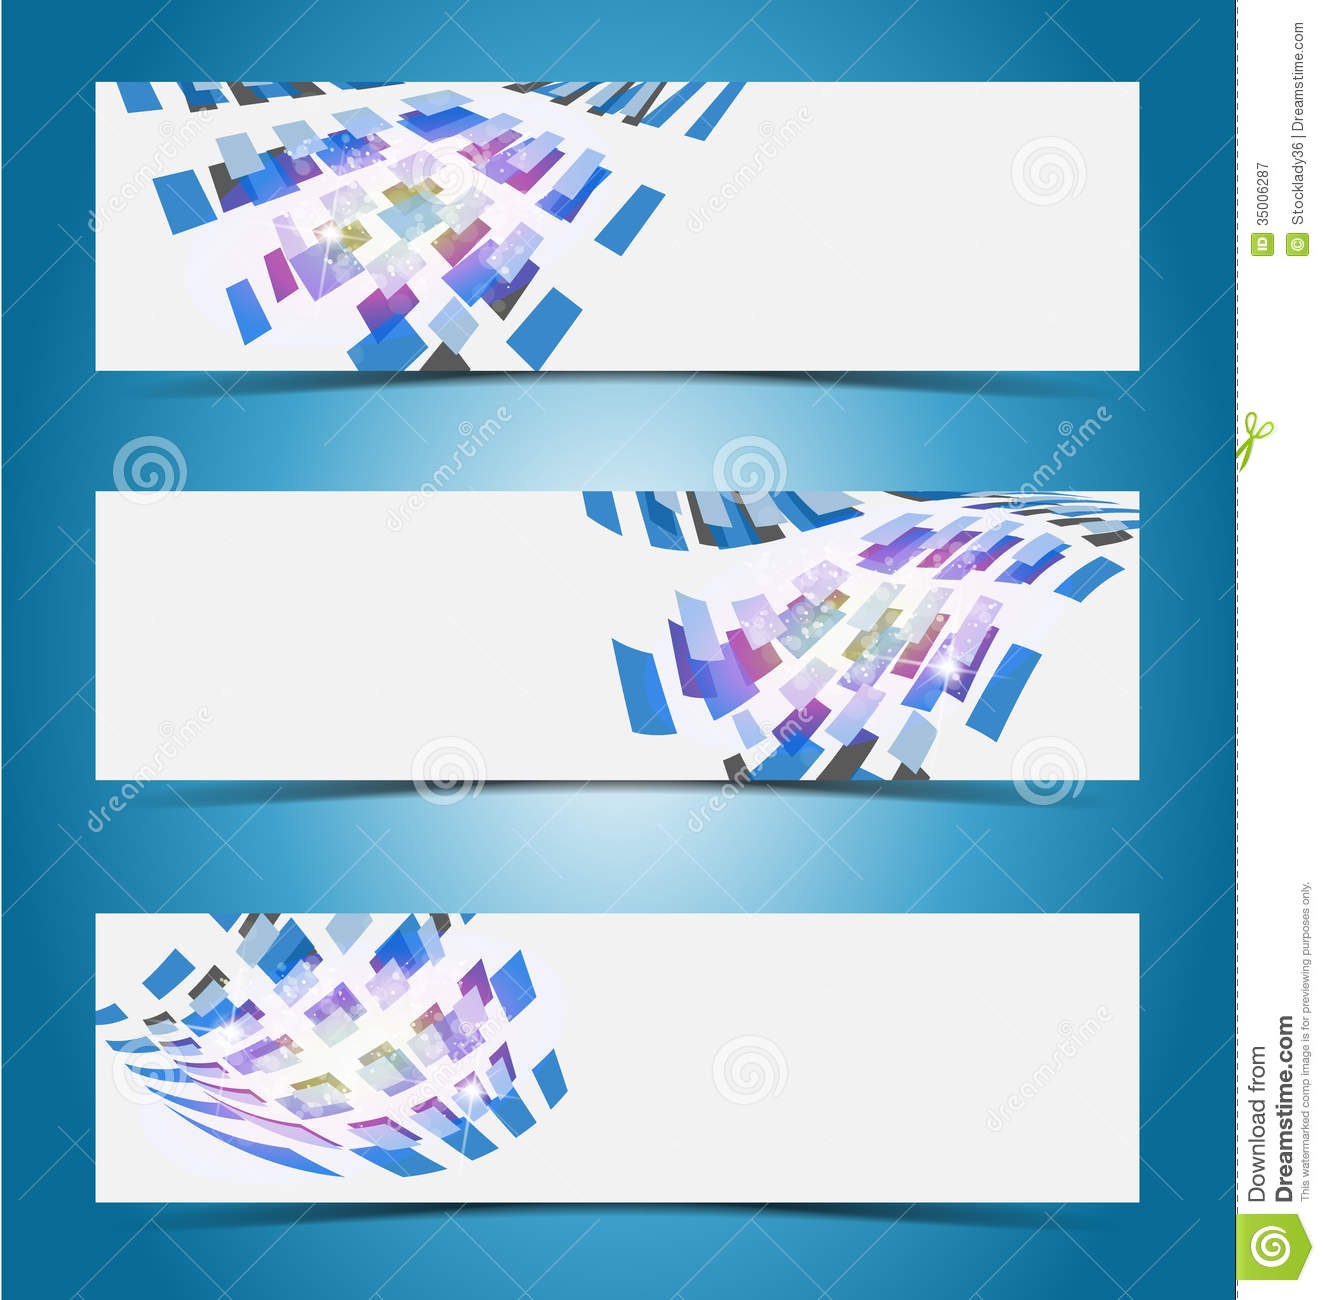 elegant banner template design stock vector  image: 56335663